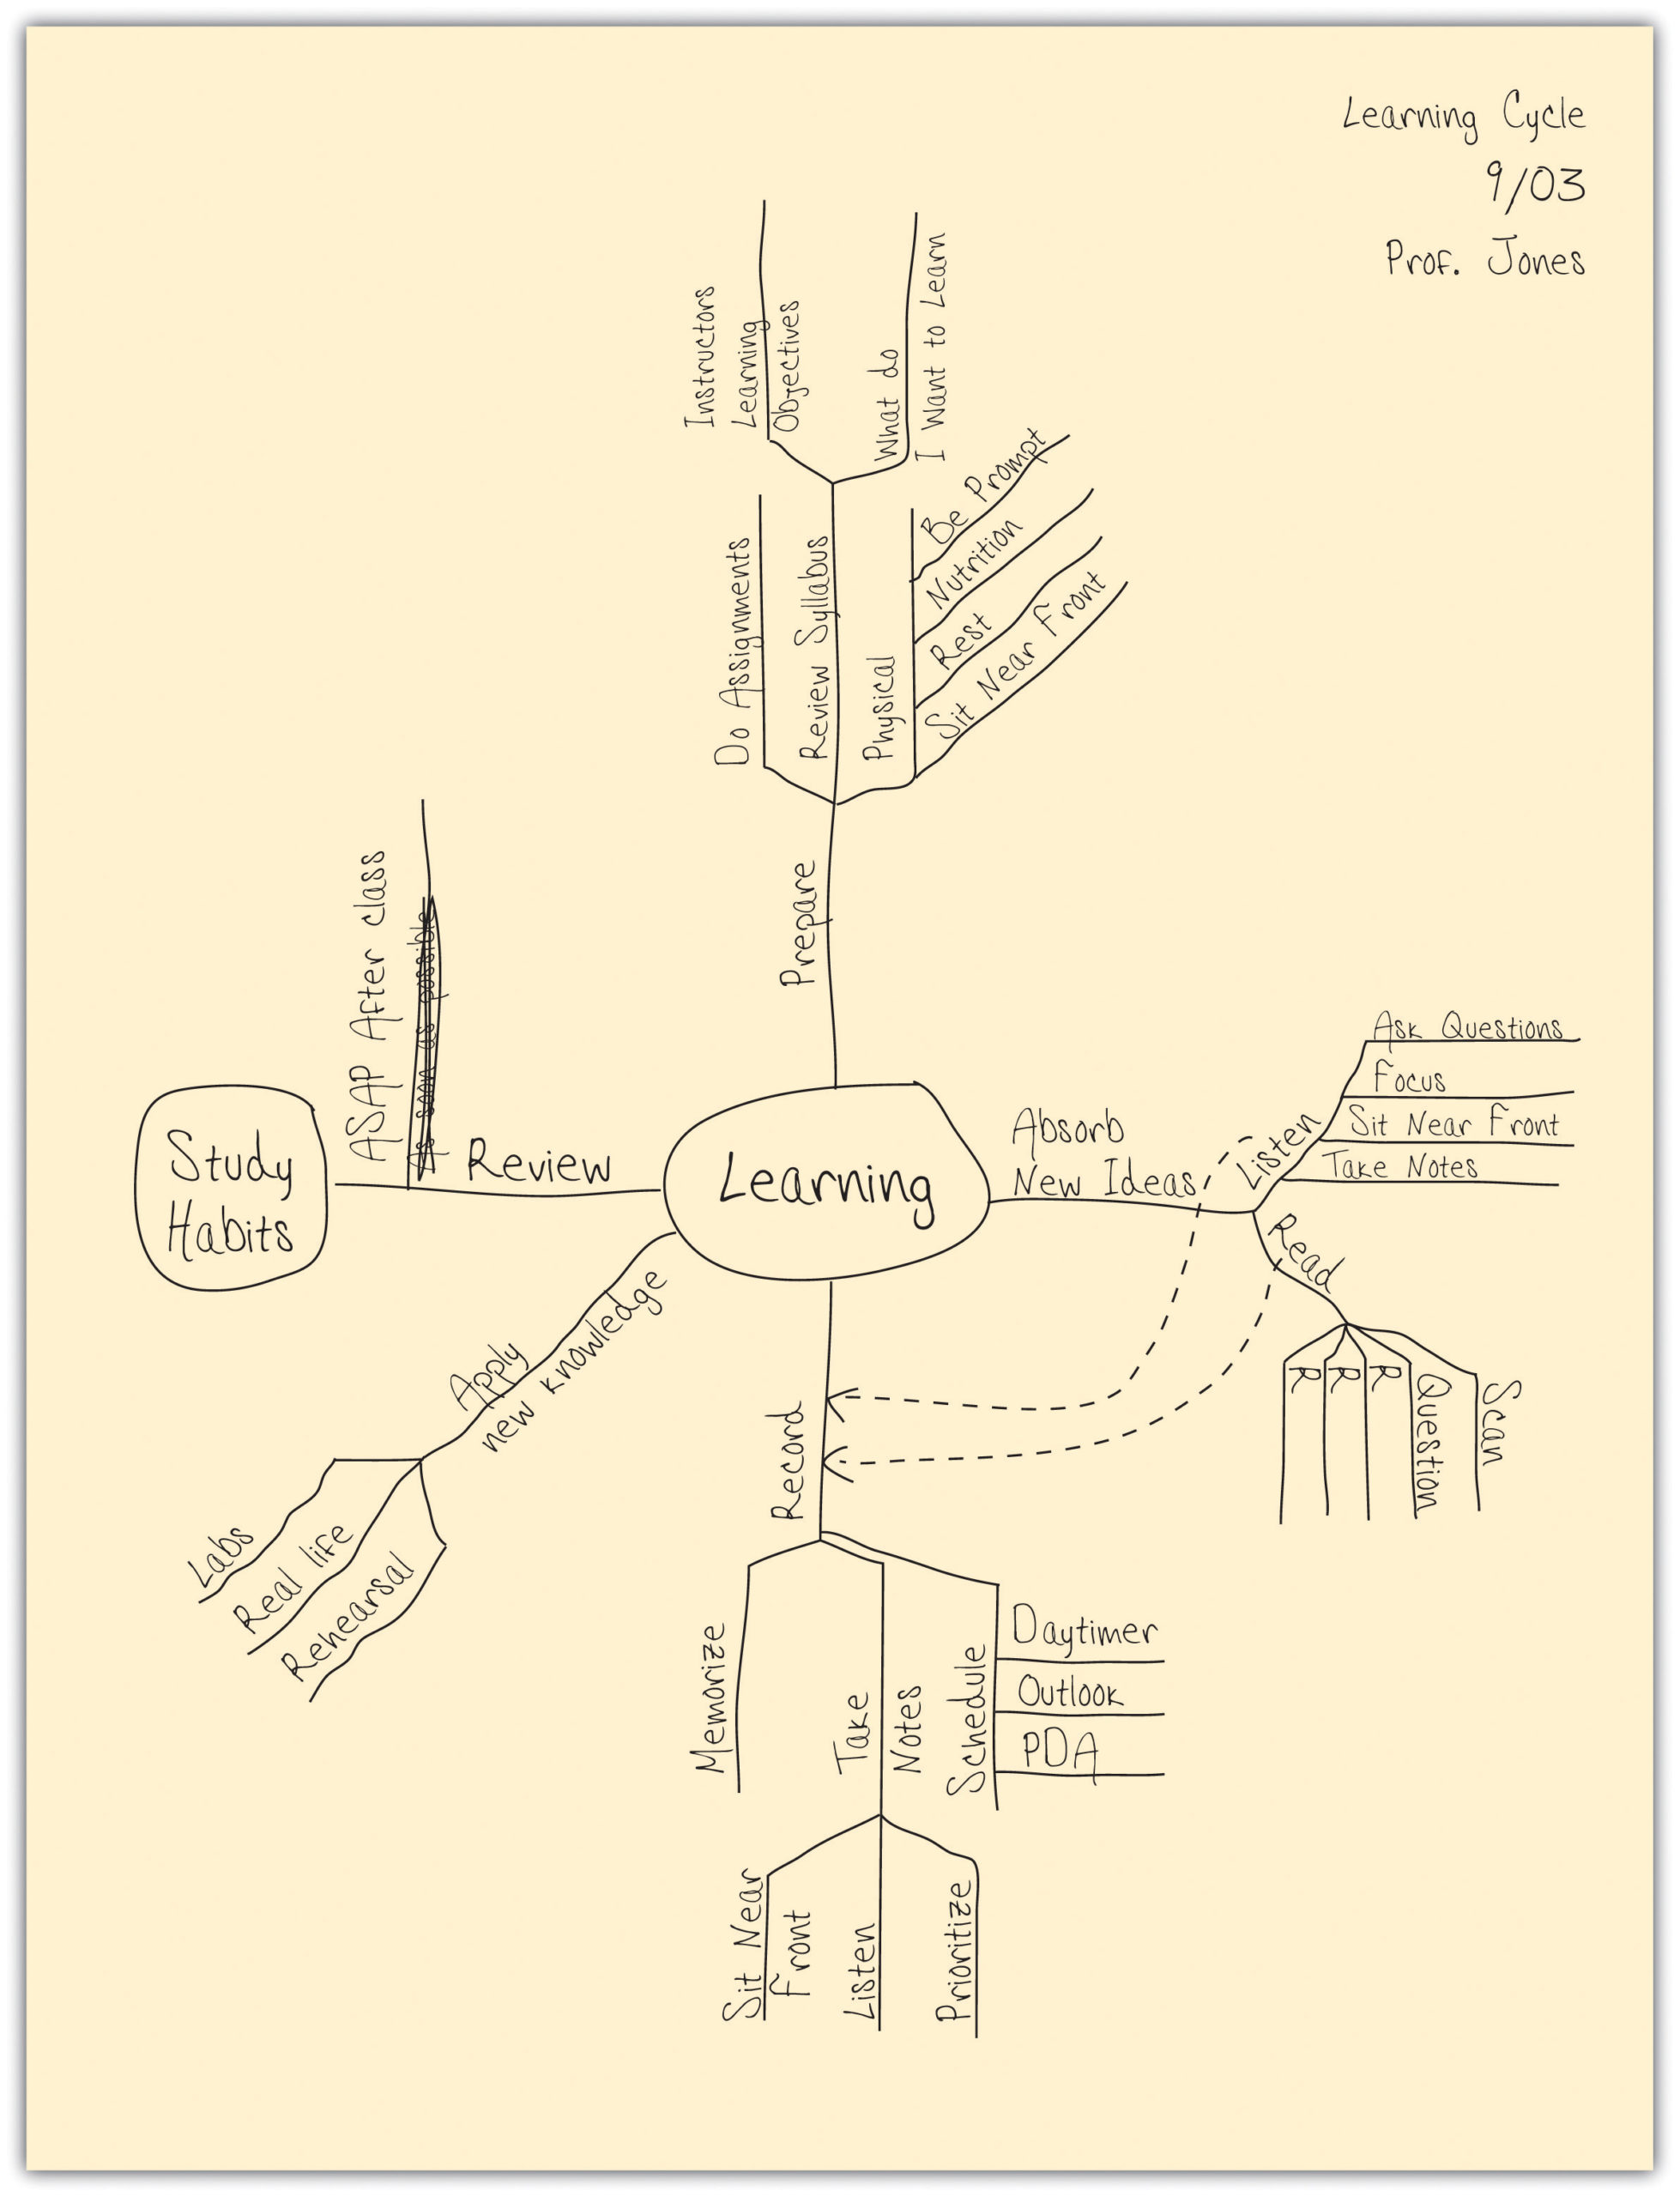 A mind map of concepts covered in class that uses lines and groupings to show connections between ideas